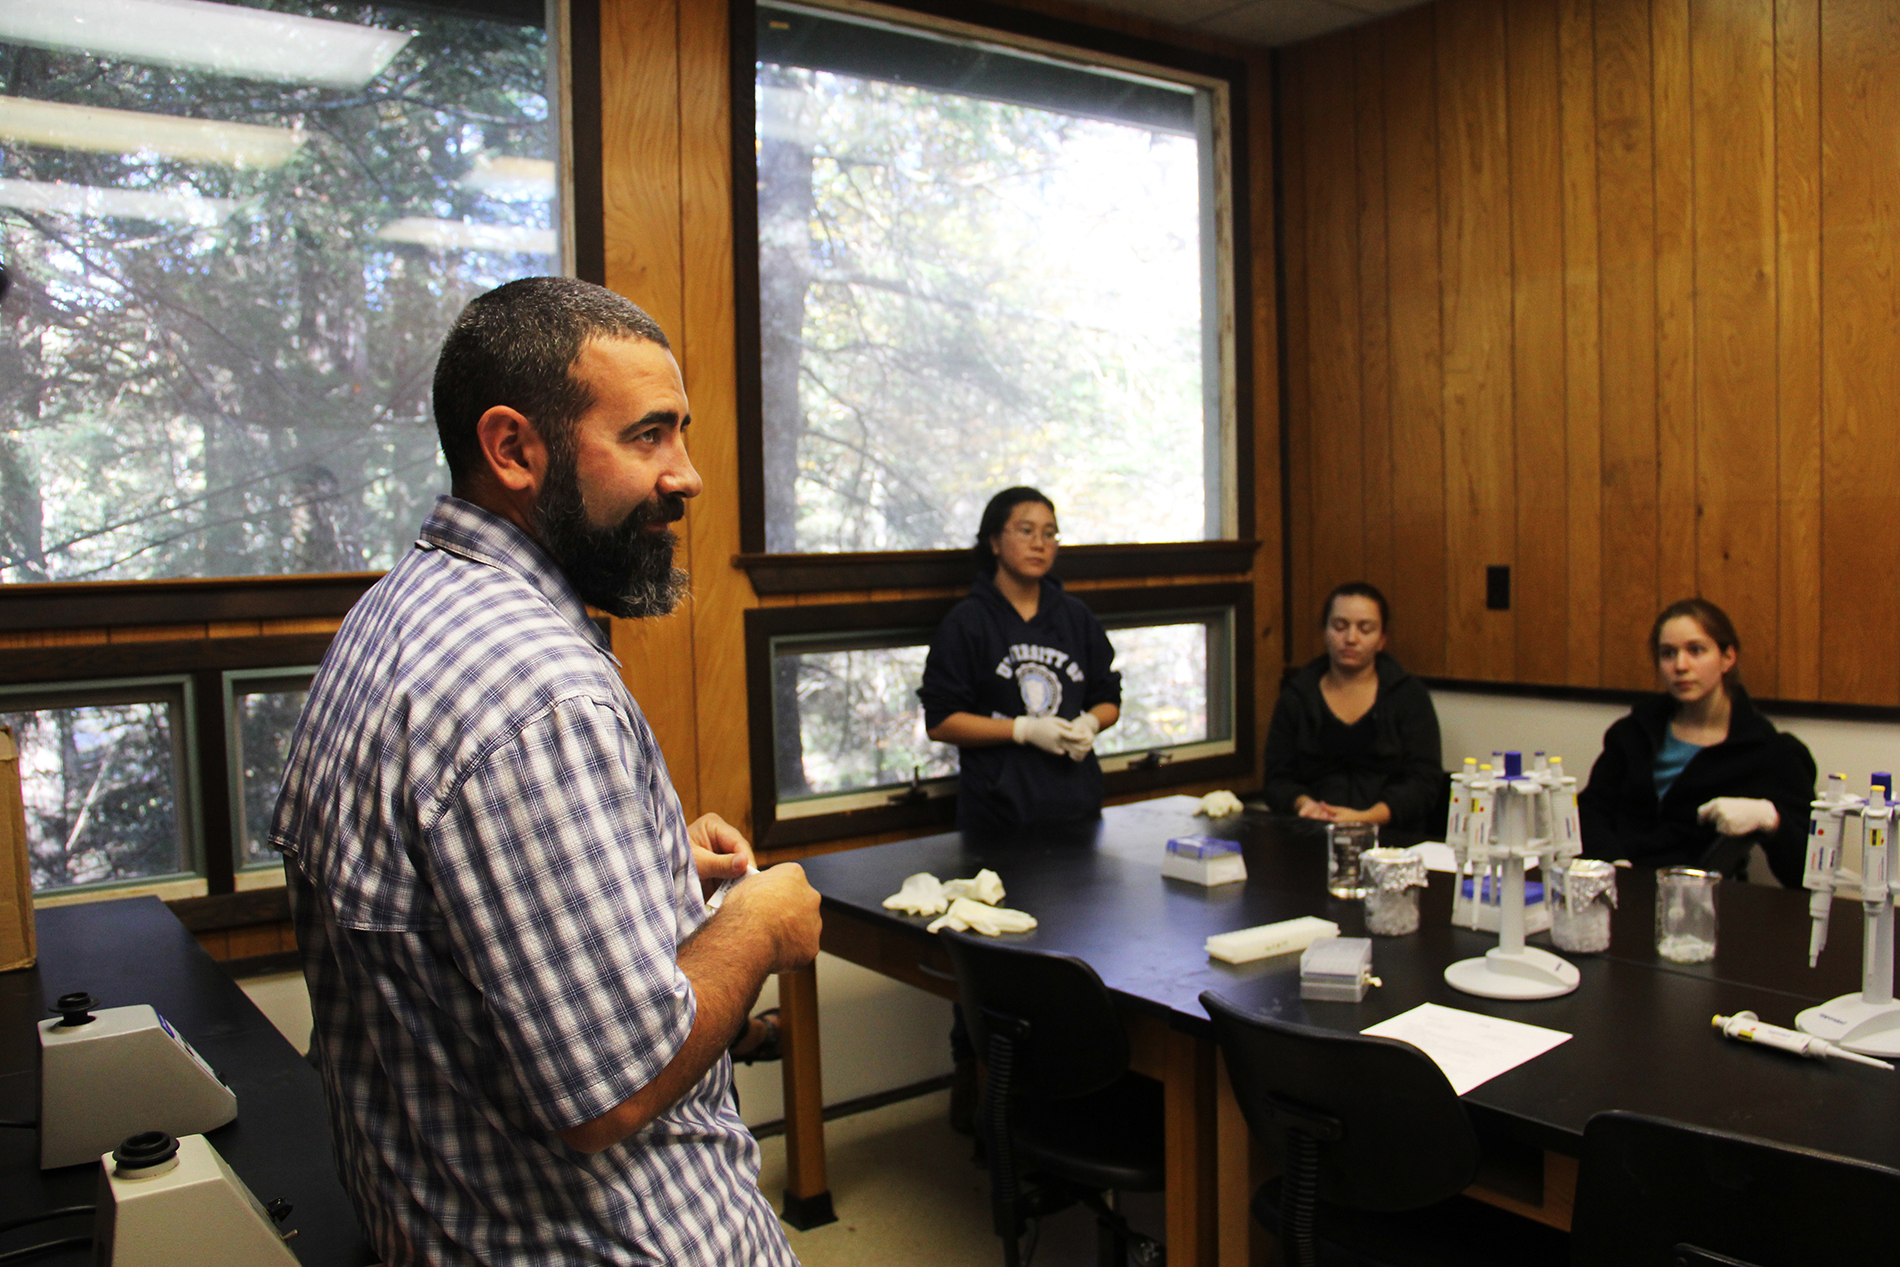 JJ Apodaca leans against a table in the lab and explains next steps